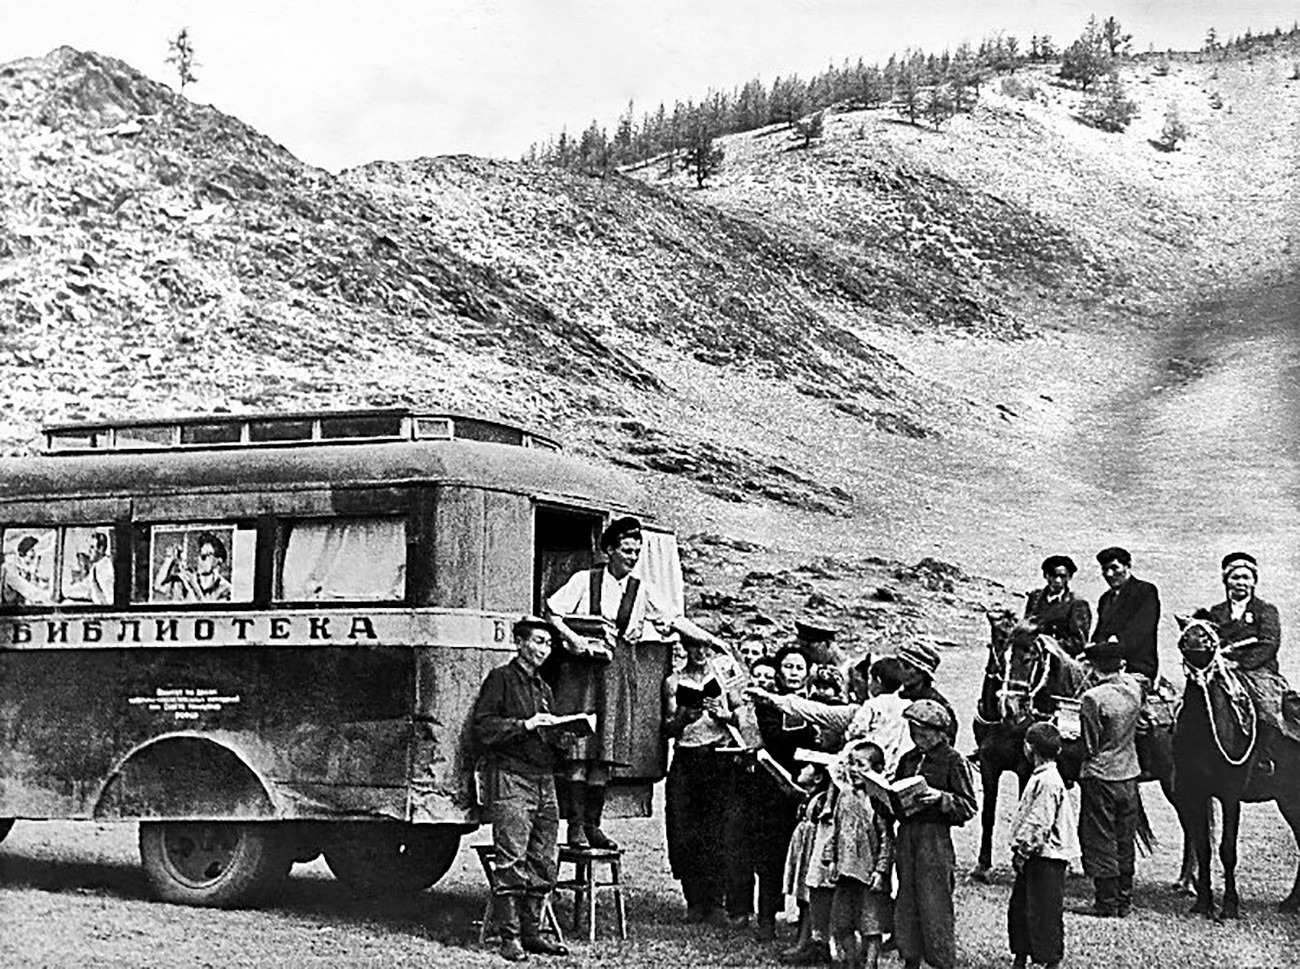 Mobile Bibliothek in der Region Altai, 1937-1939